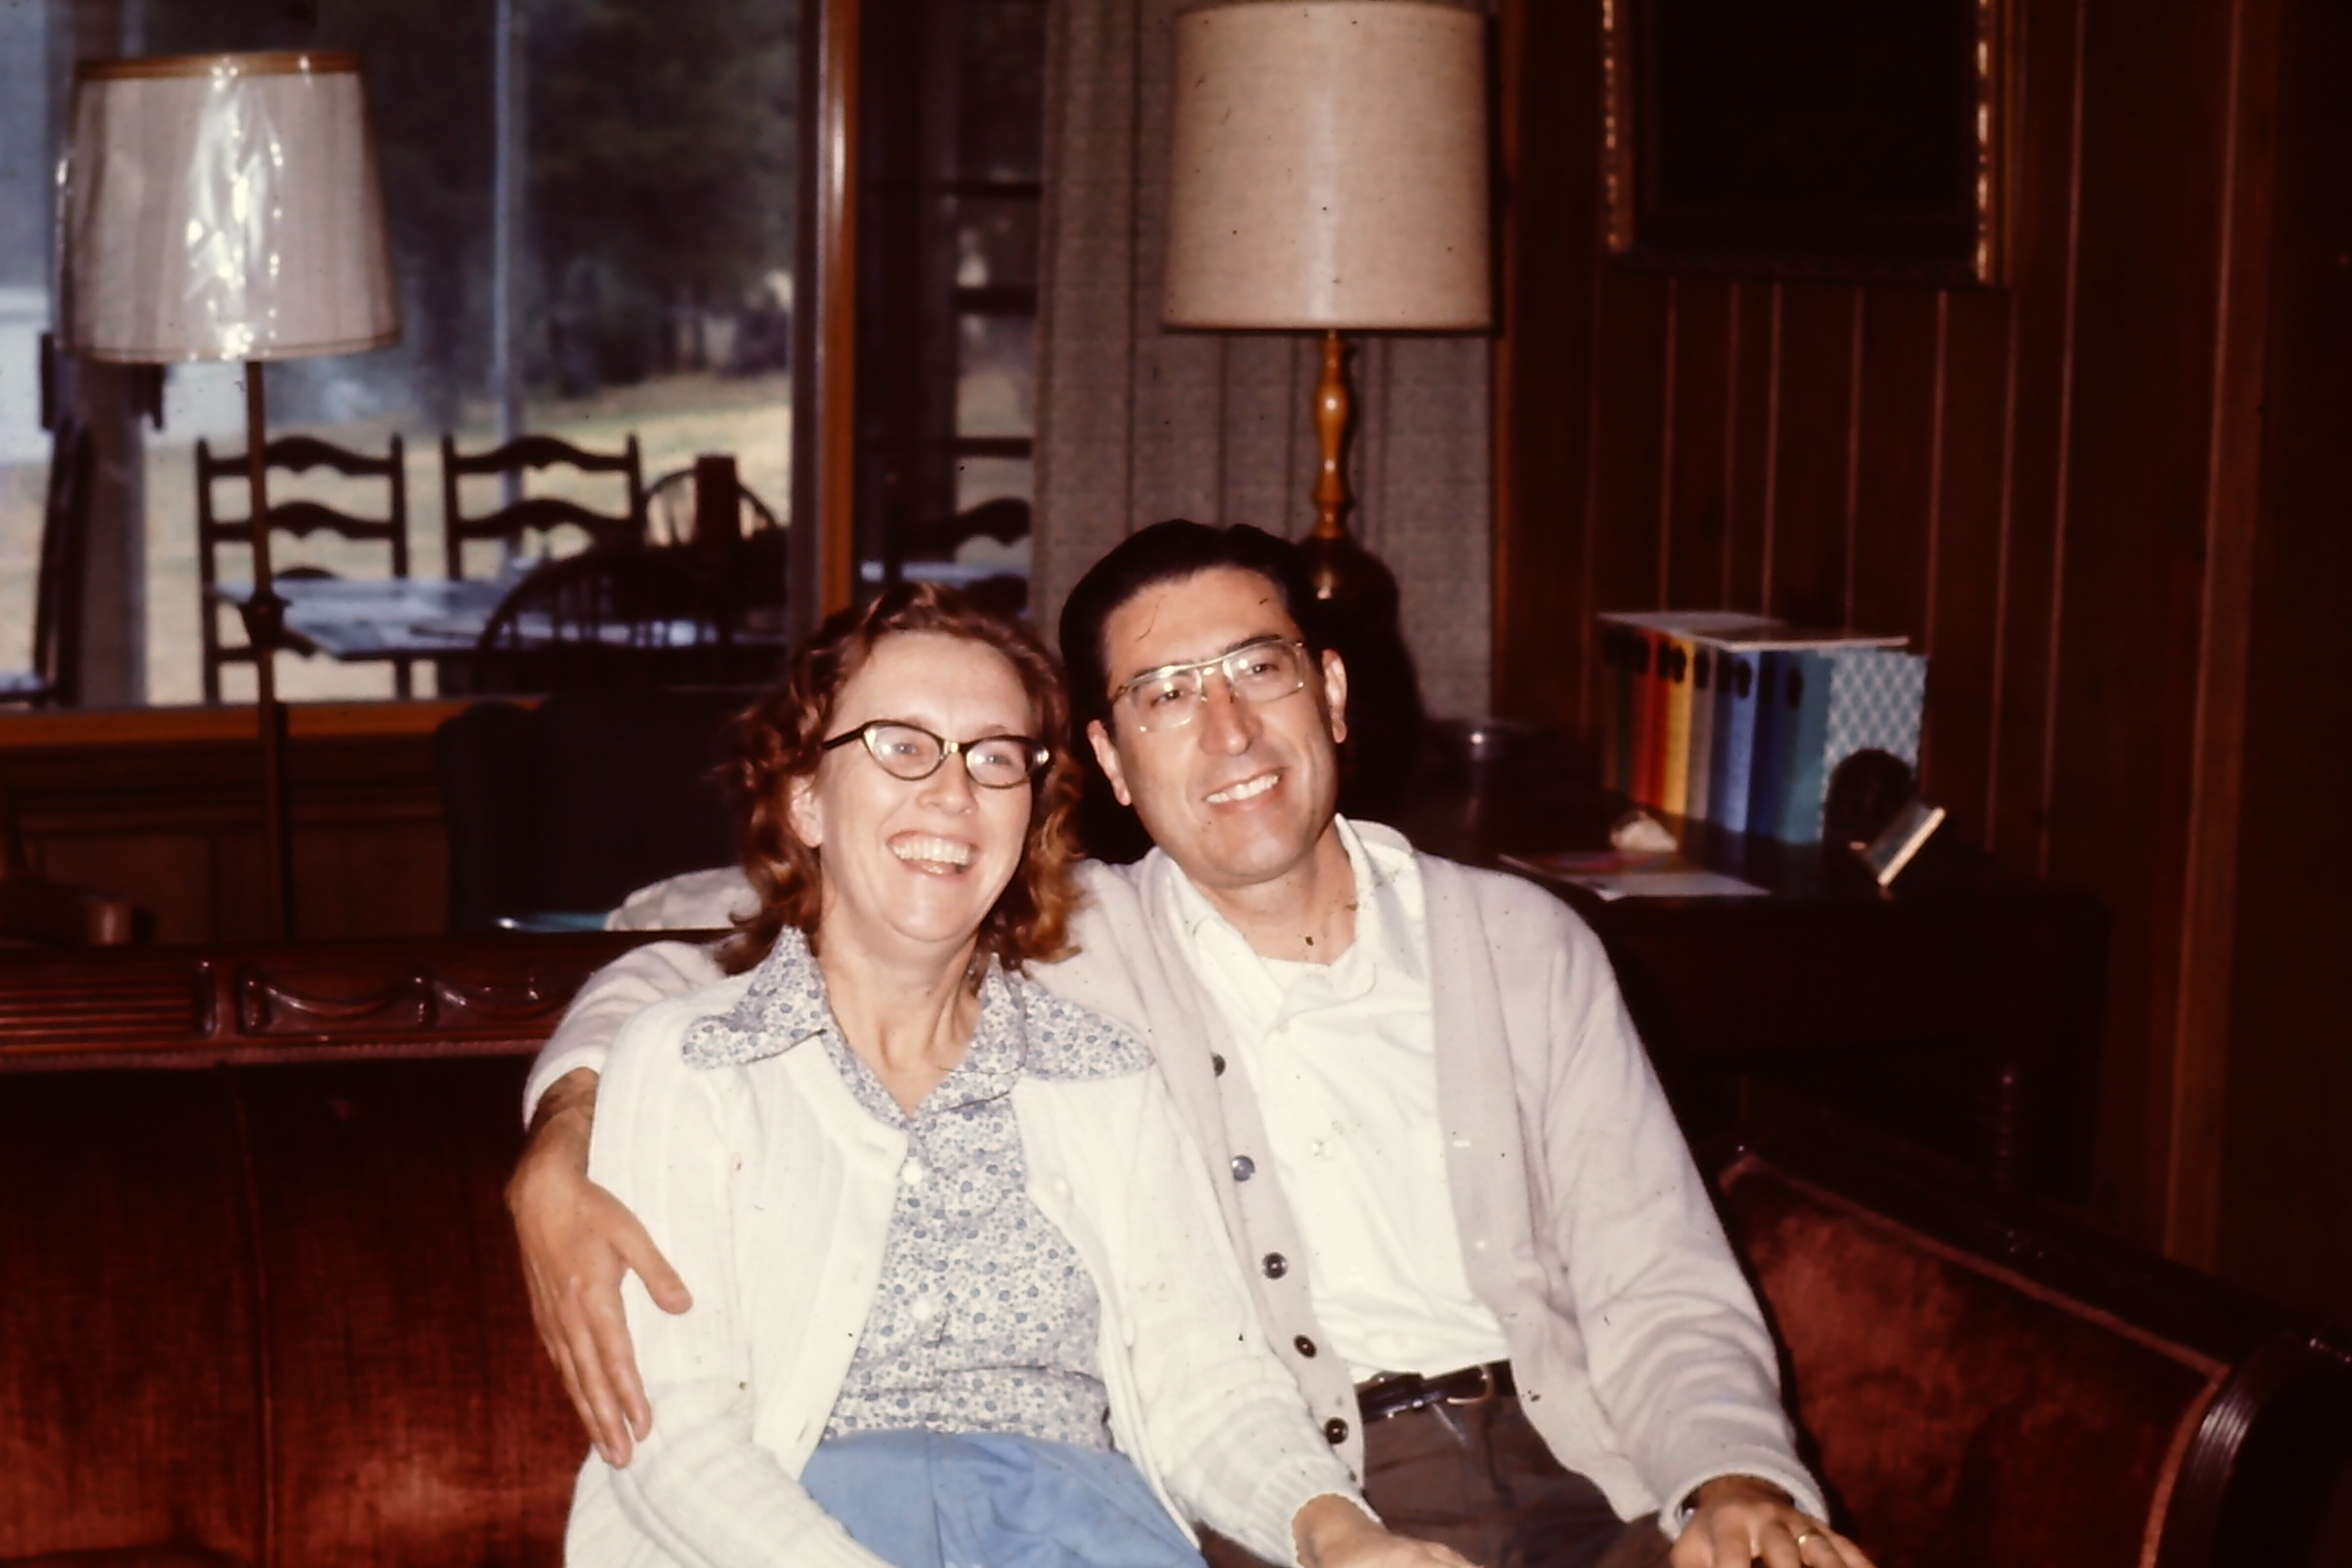 My grandmother and grandfather who were missionaries to Spain, are pictured here visiting in my great-grandfather's house.